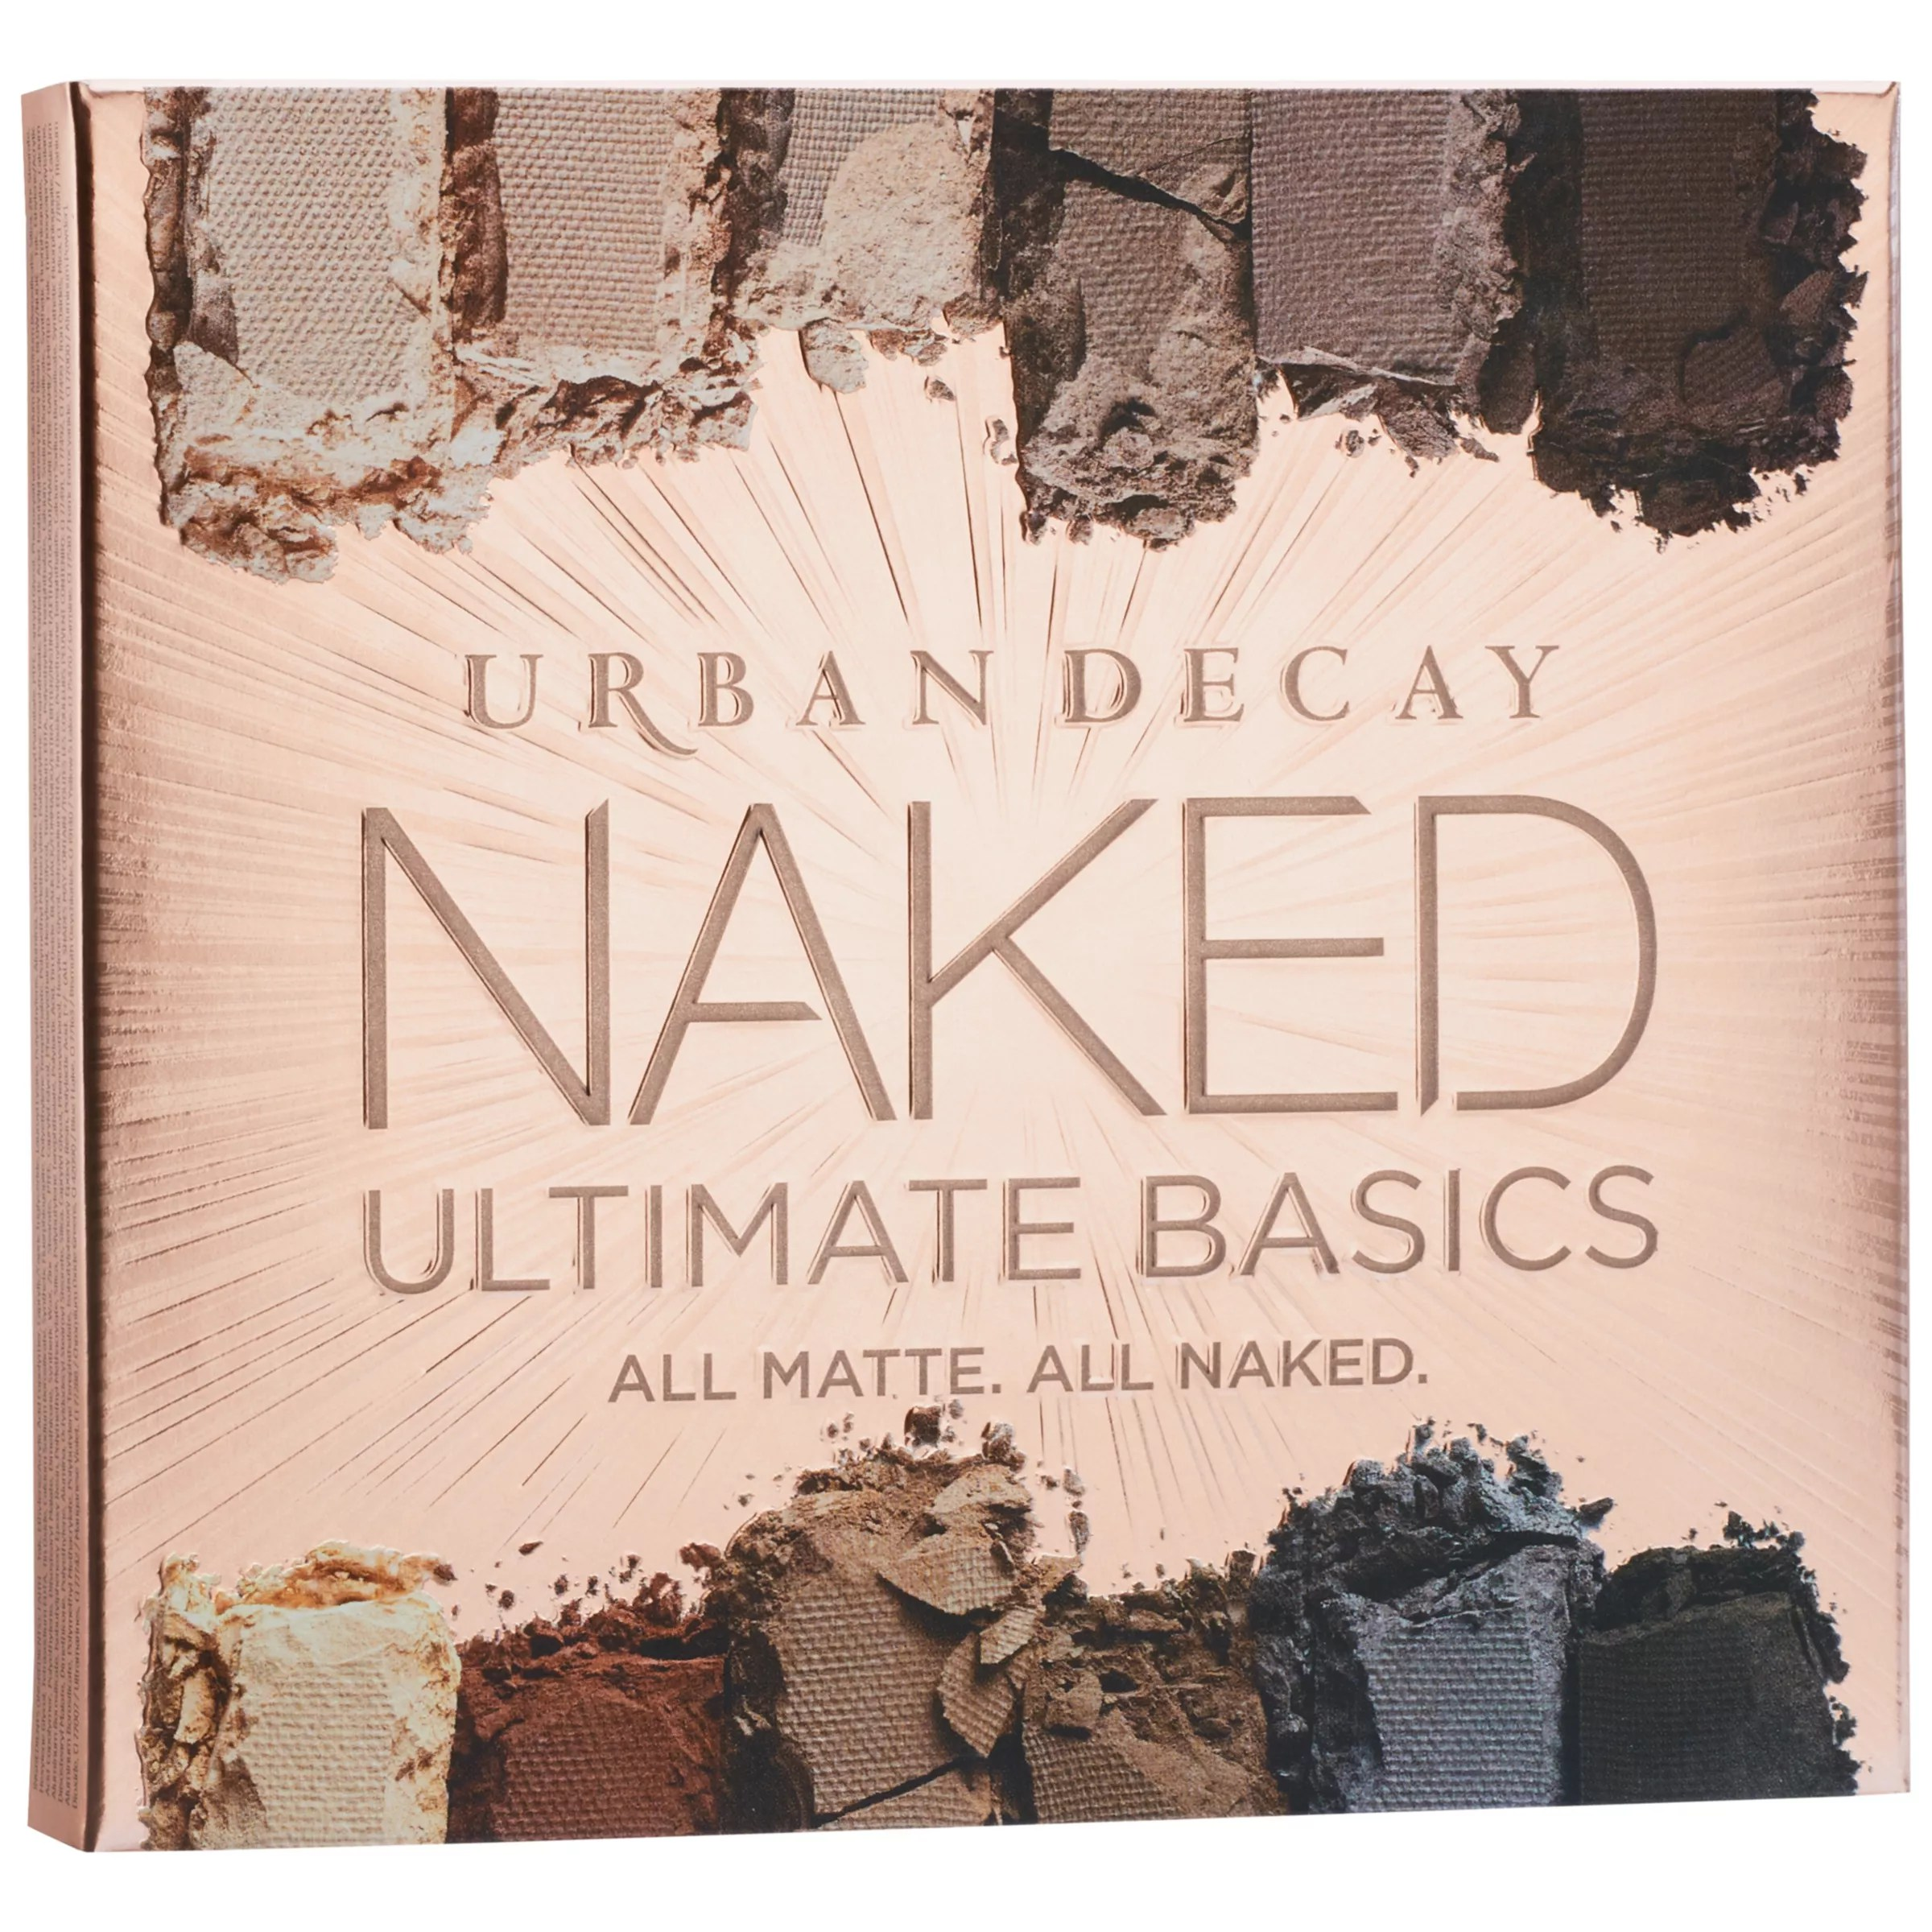 Tables En Palettes Urban Decay Naked Ultimate Basics Eyeshadow Palette